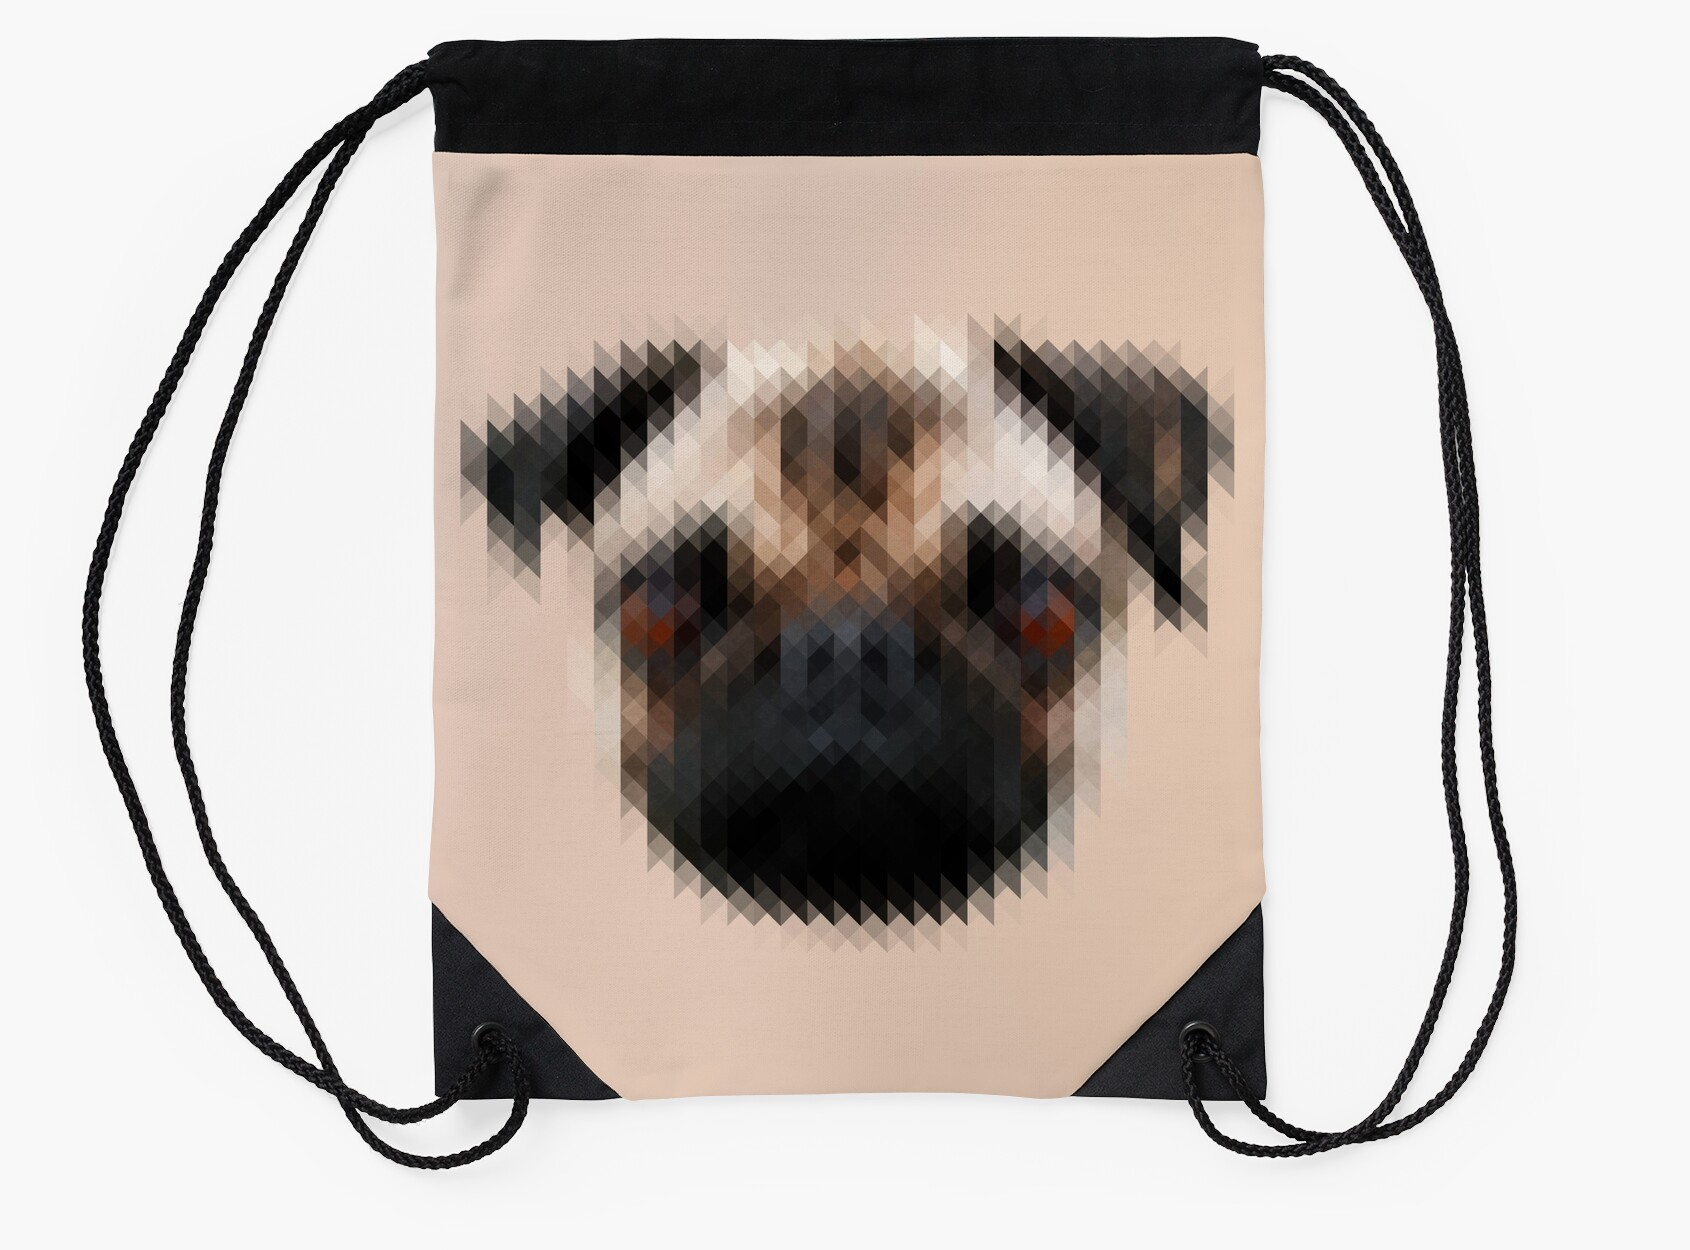 pixelated pug dog